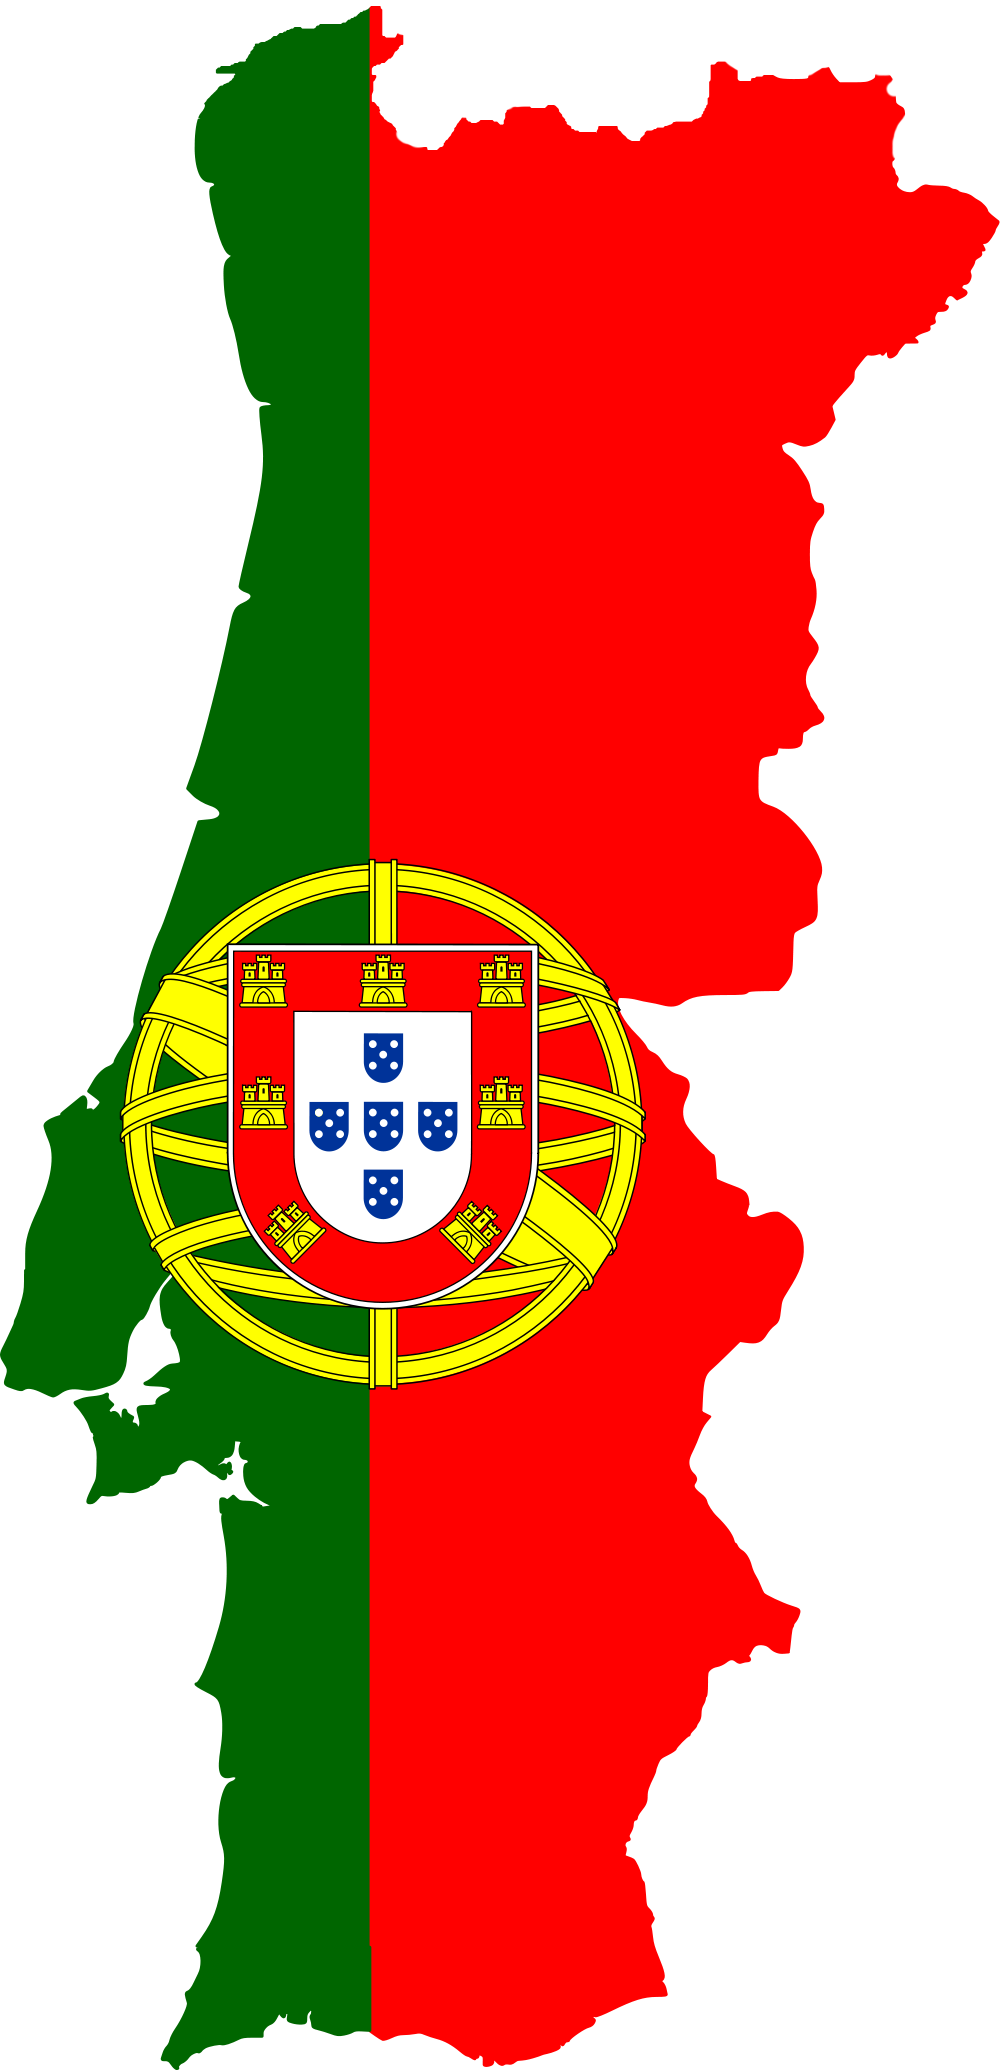 FileUEFAEuroflagmappng Wikimedia Commons - Portugal map png